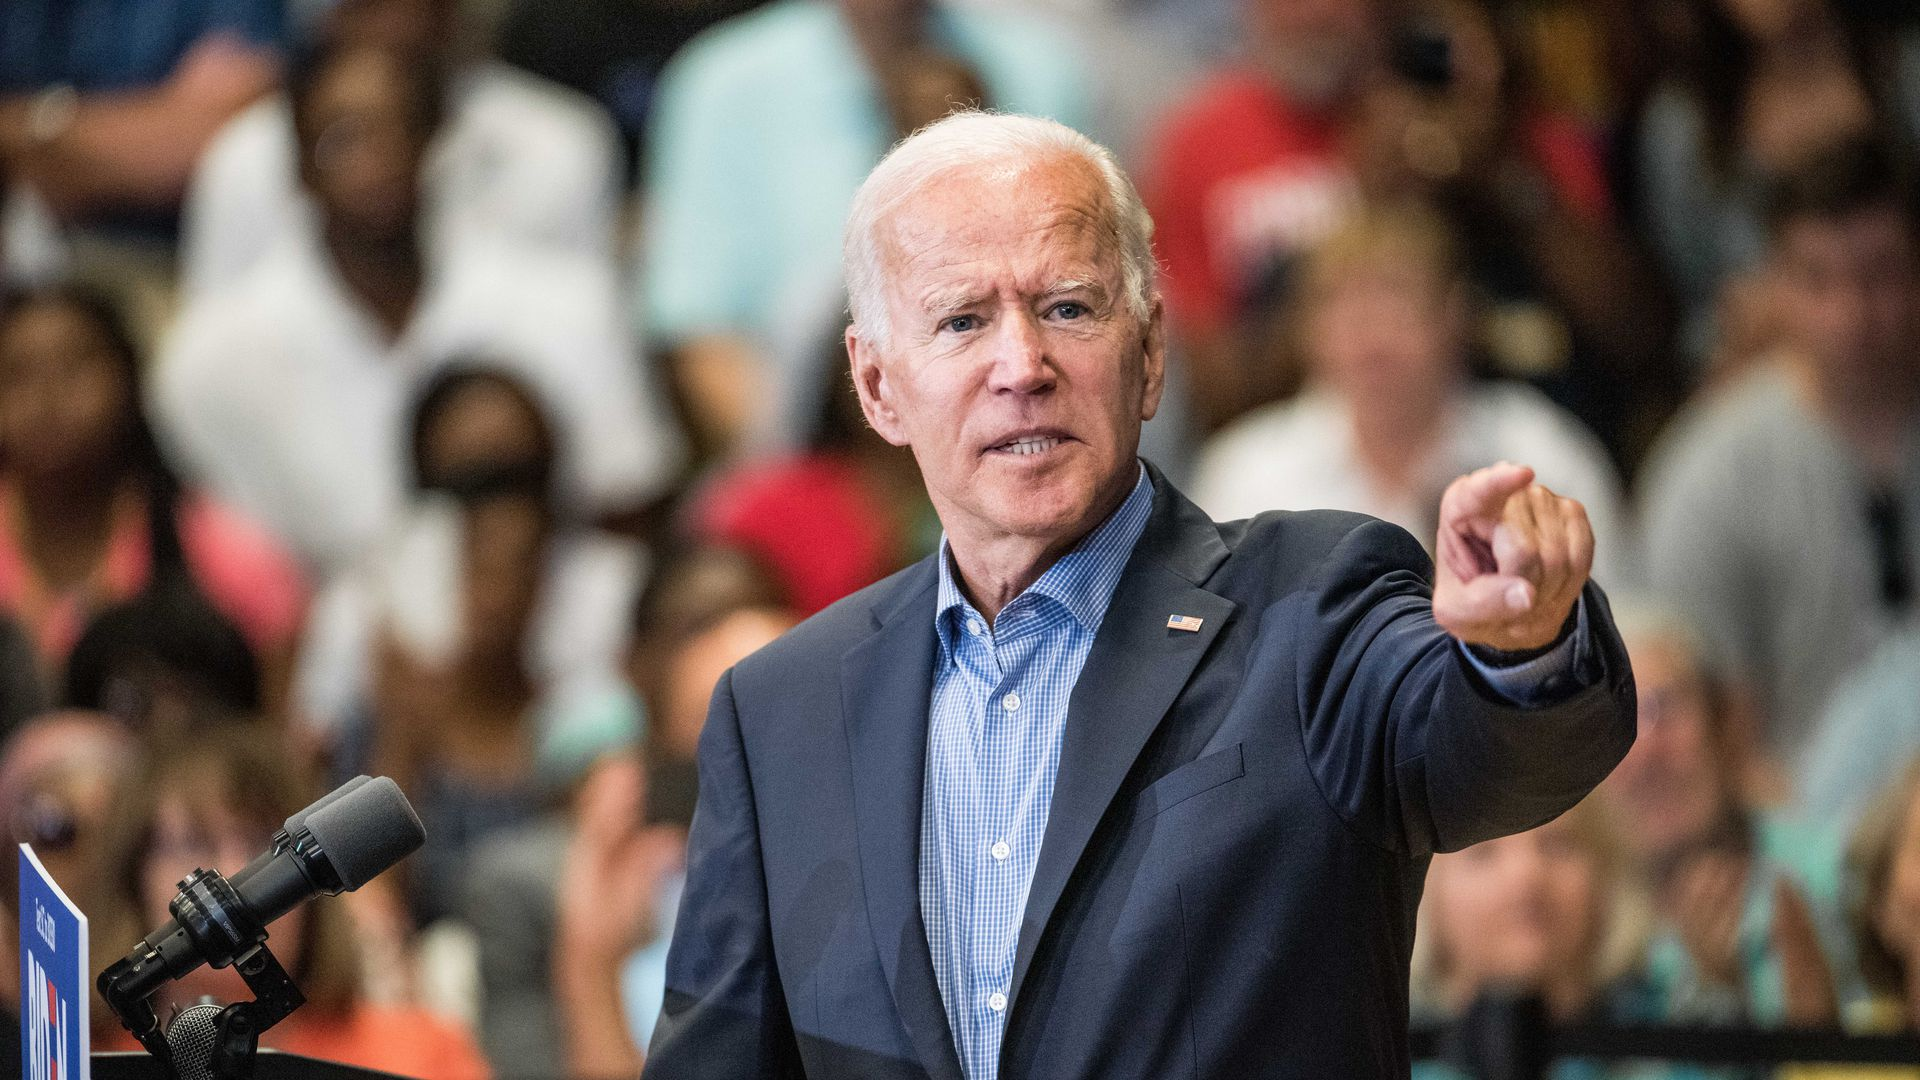 Joe Biden giving a speech, making a dramatic gesture, with the crowd behind him.